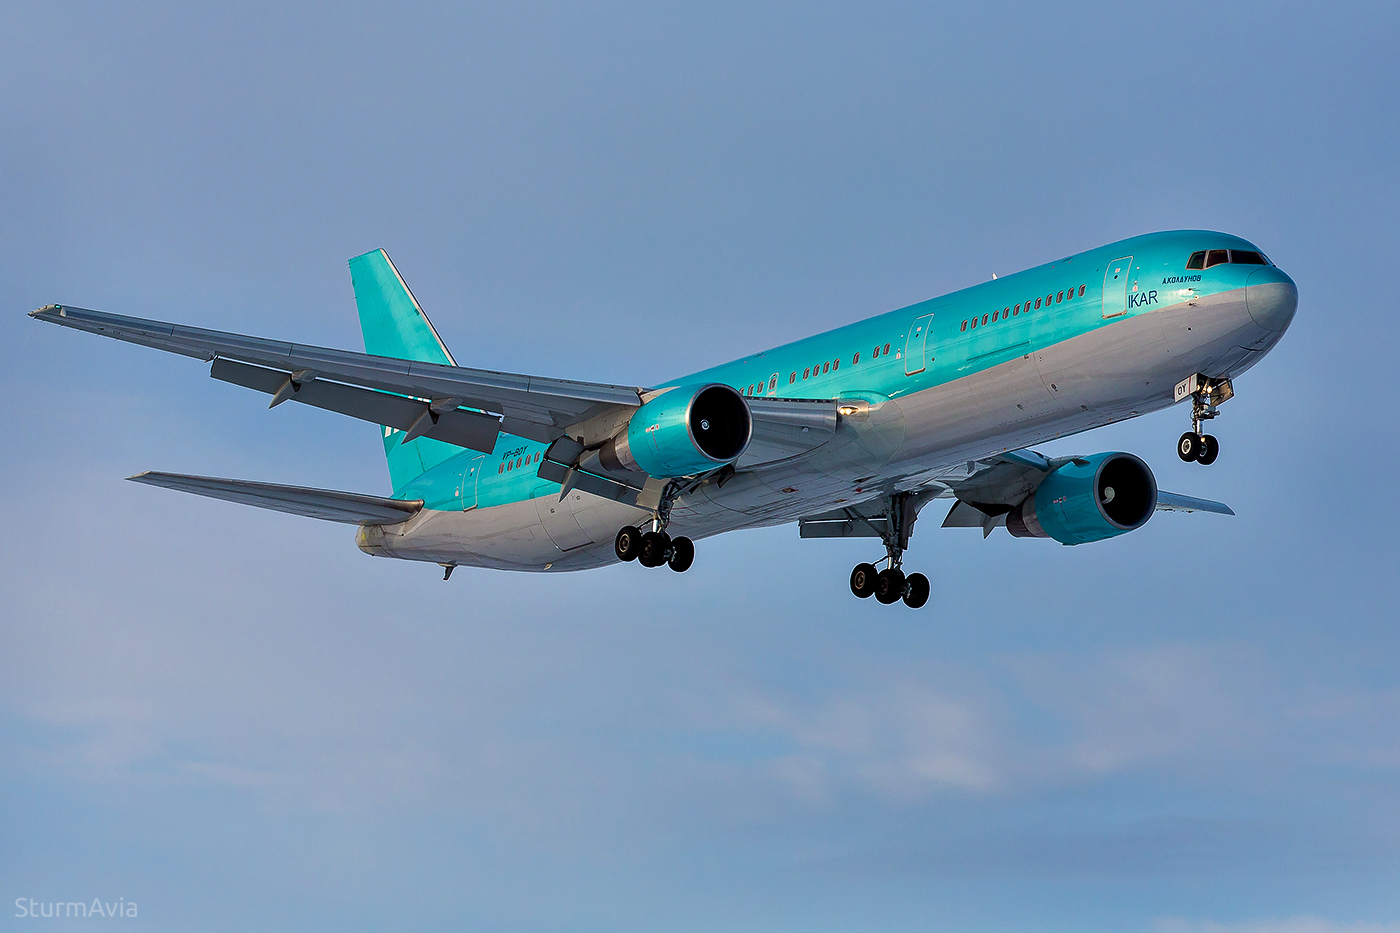 Boeing 767-300ER VP-BOY Pegas Fly - ИКАР